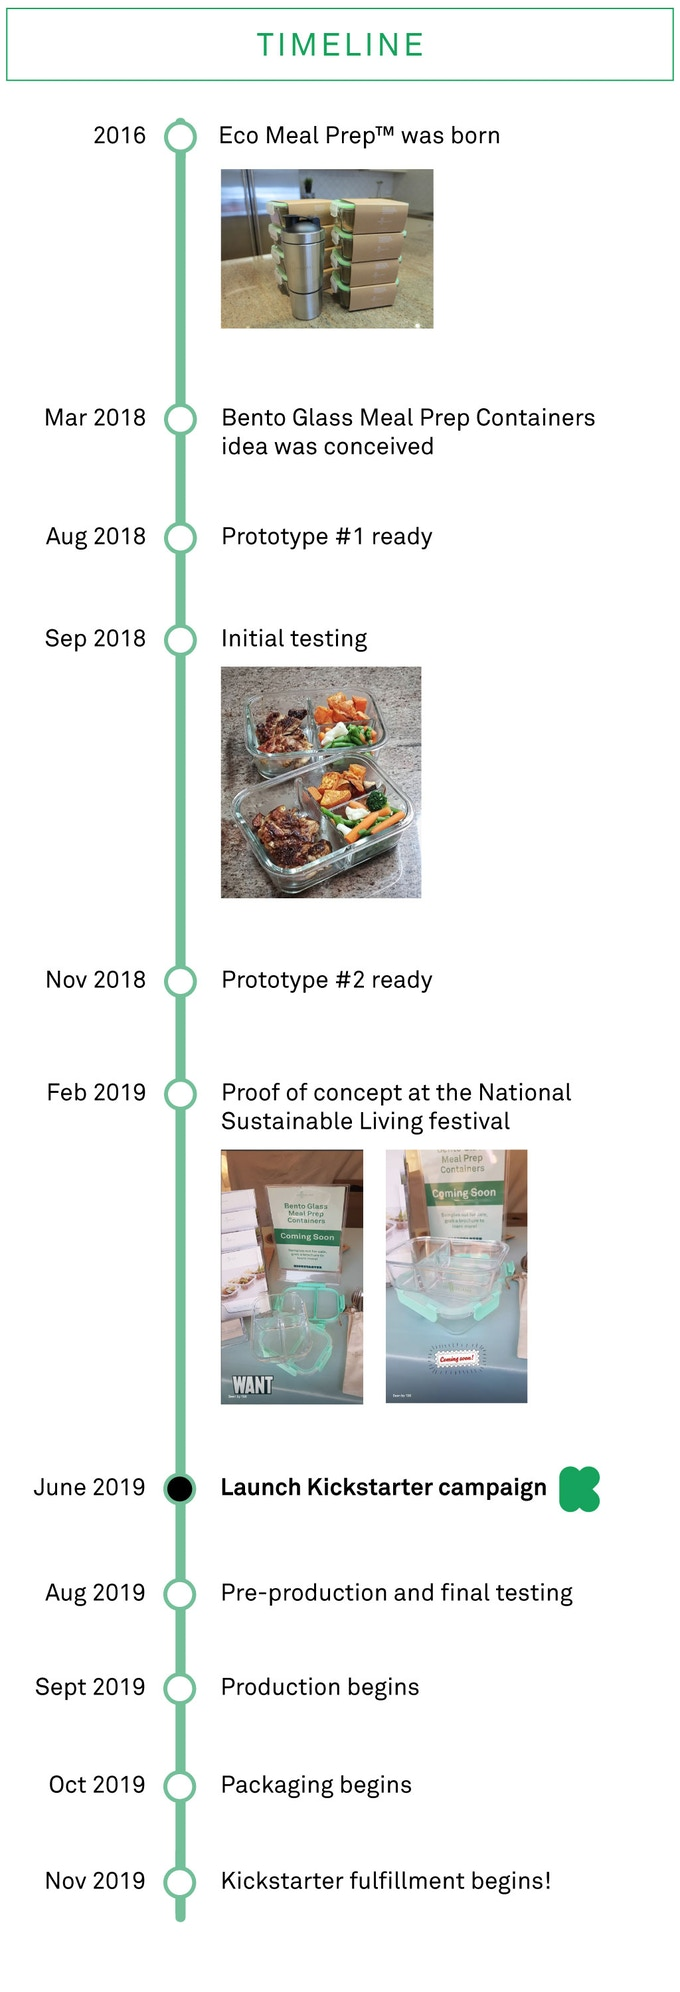 Best Meal Prep Containers 2020 Eco Meal Prep™ Australia's First Bento Glass Containers by Eco